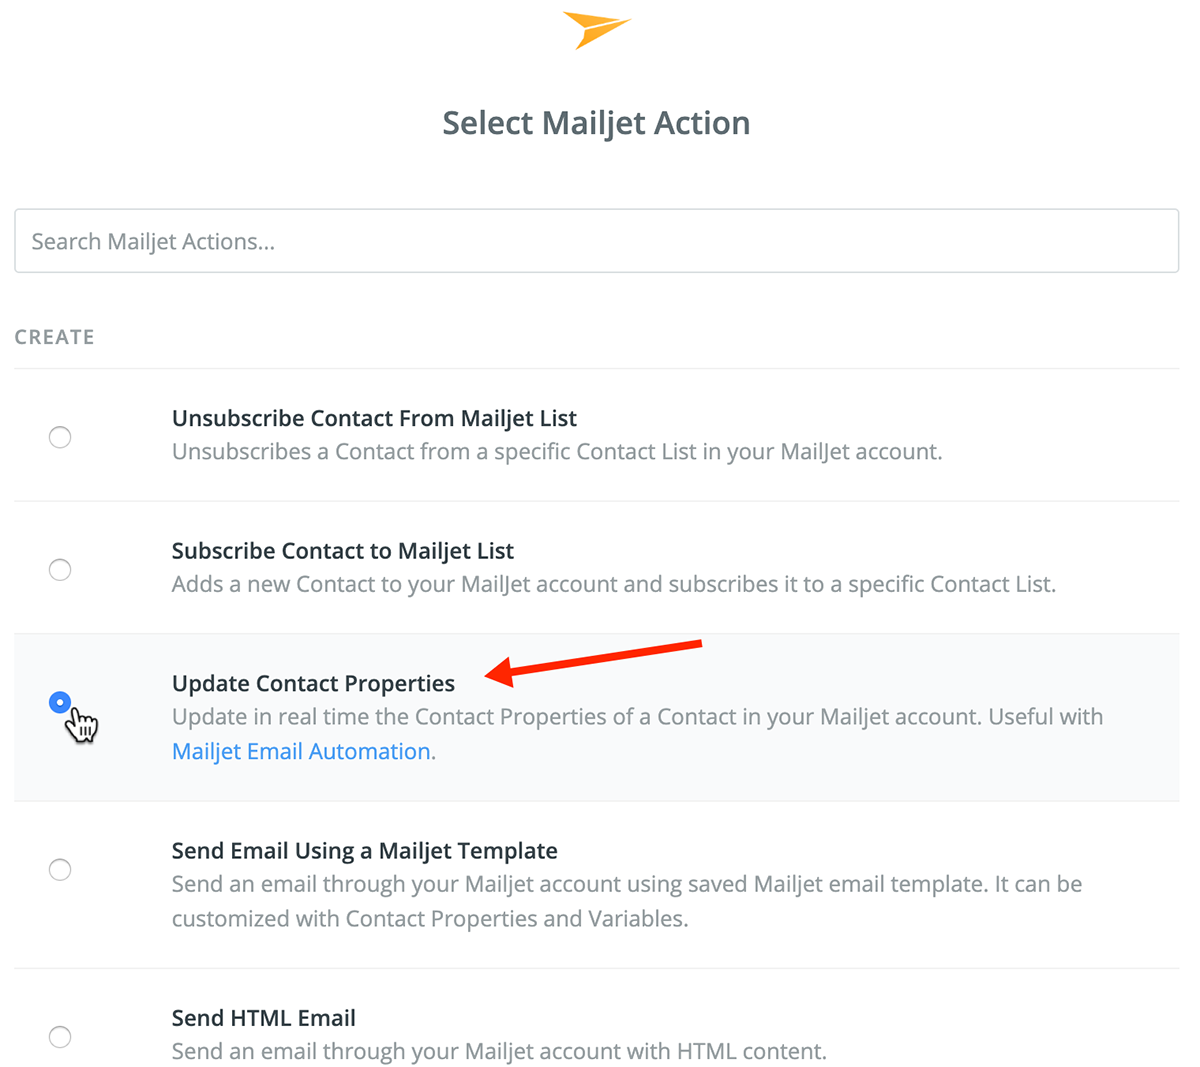 Mailjet Actions